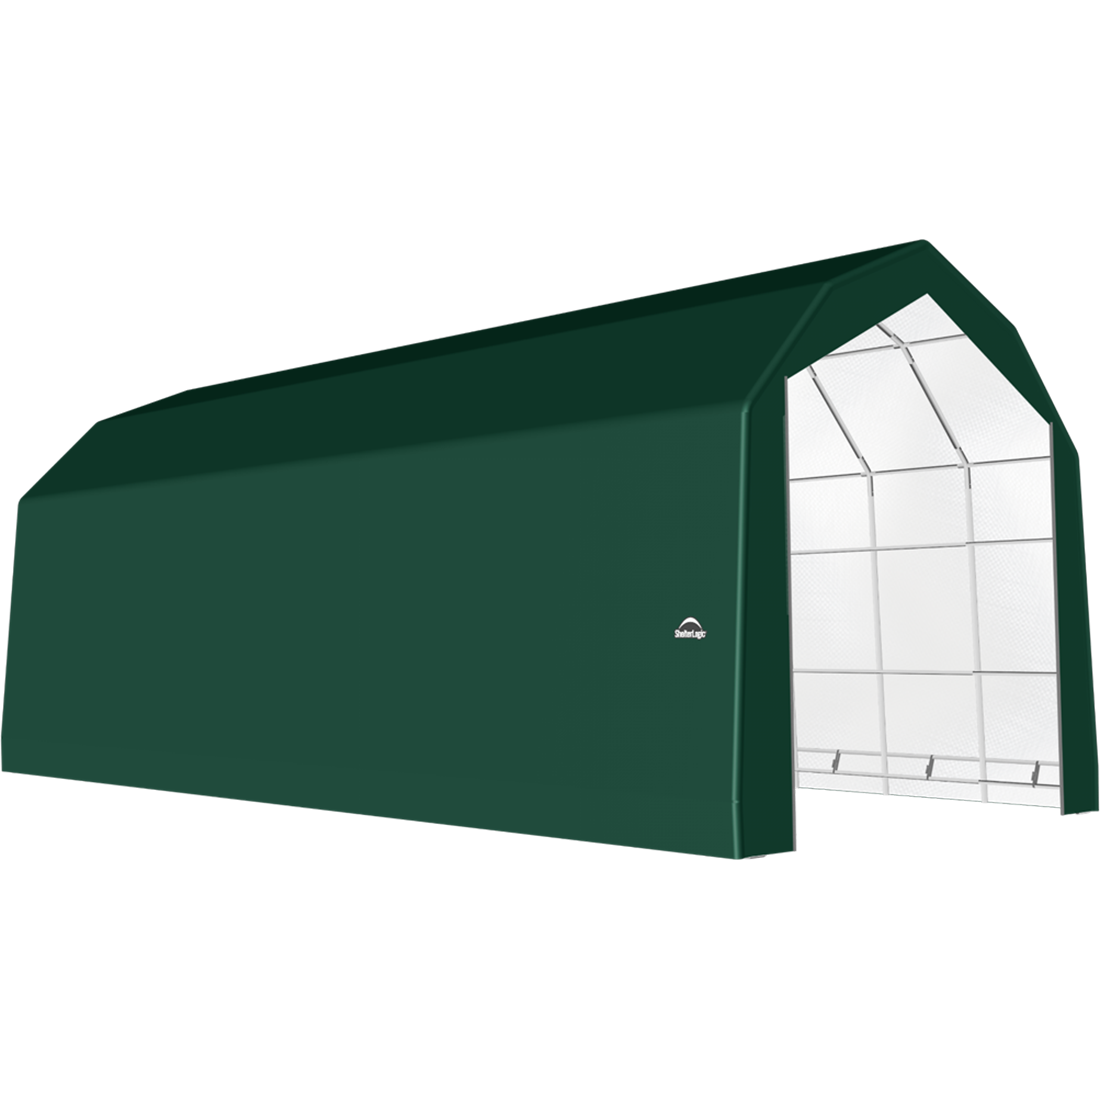 SP Barn 20X36X18 Green 14 oz PE Shelter